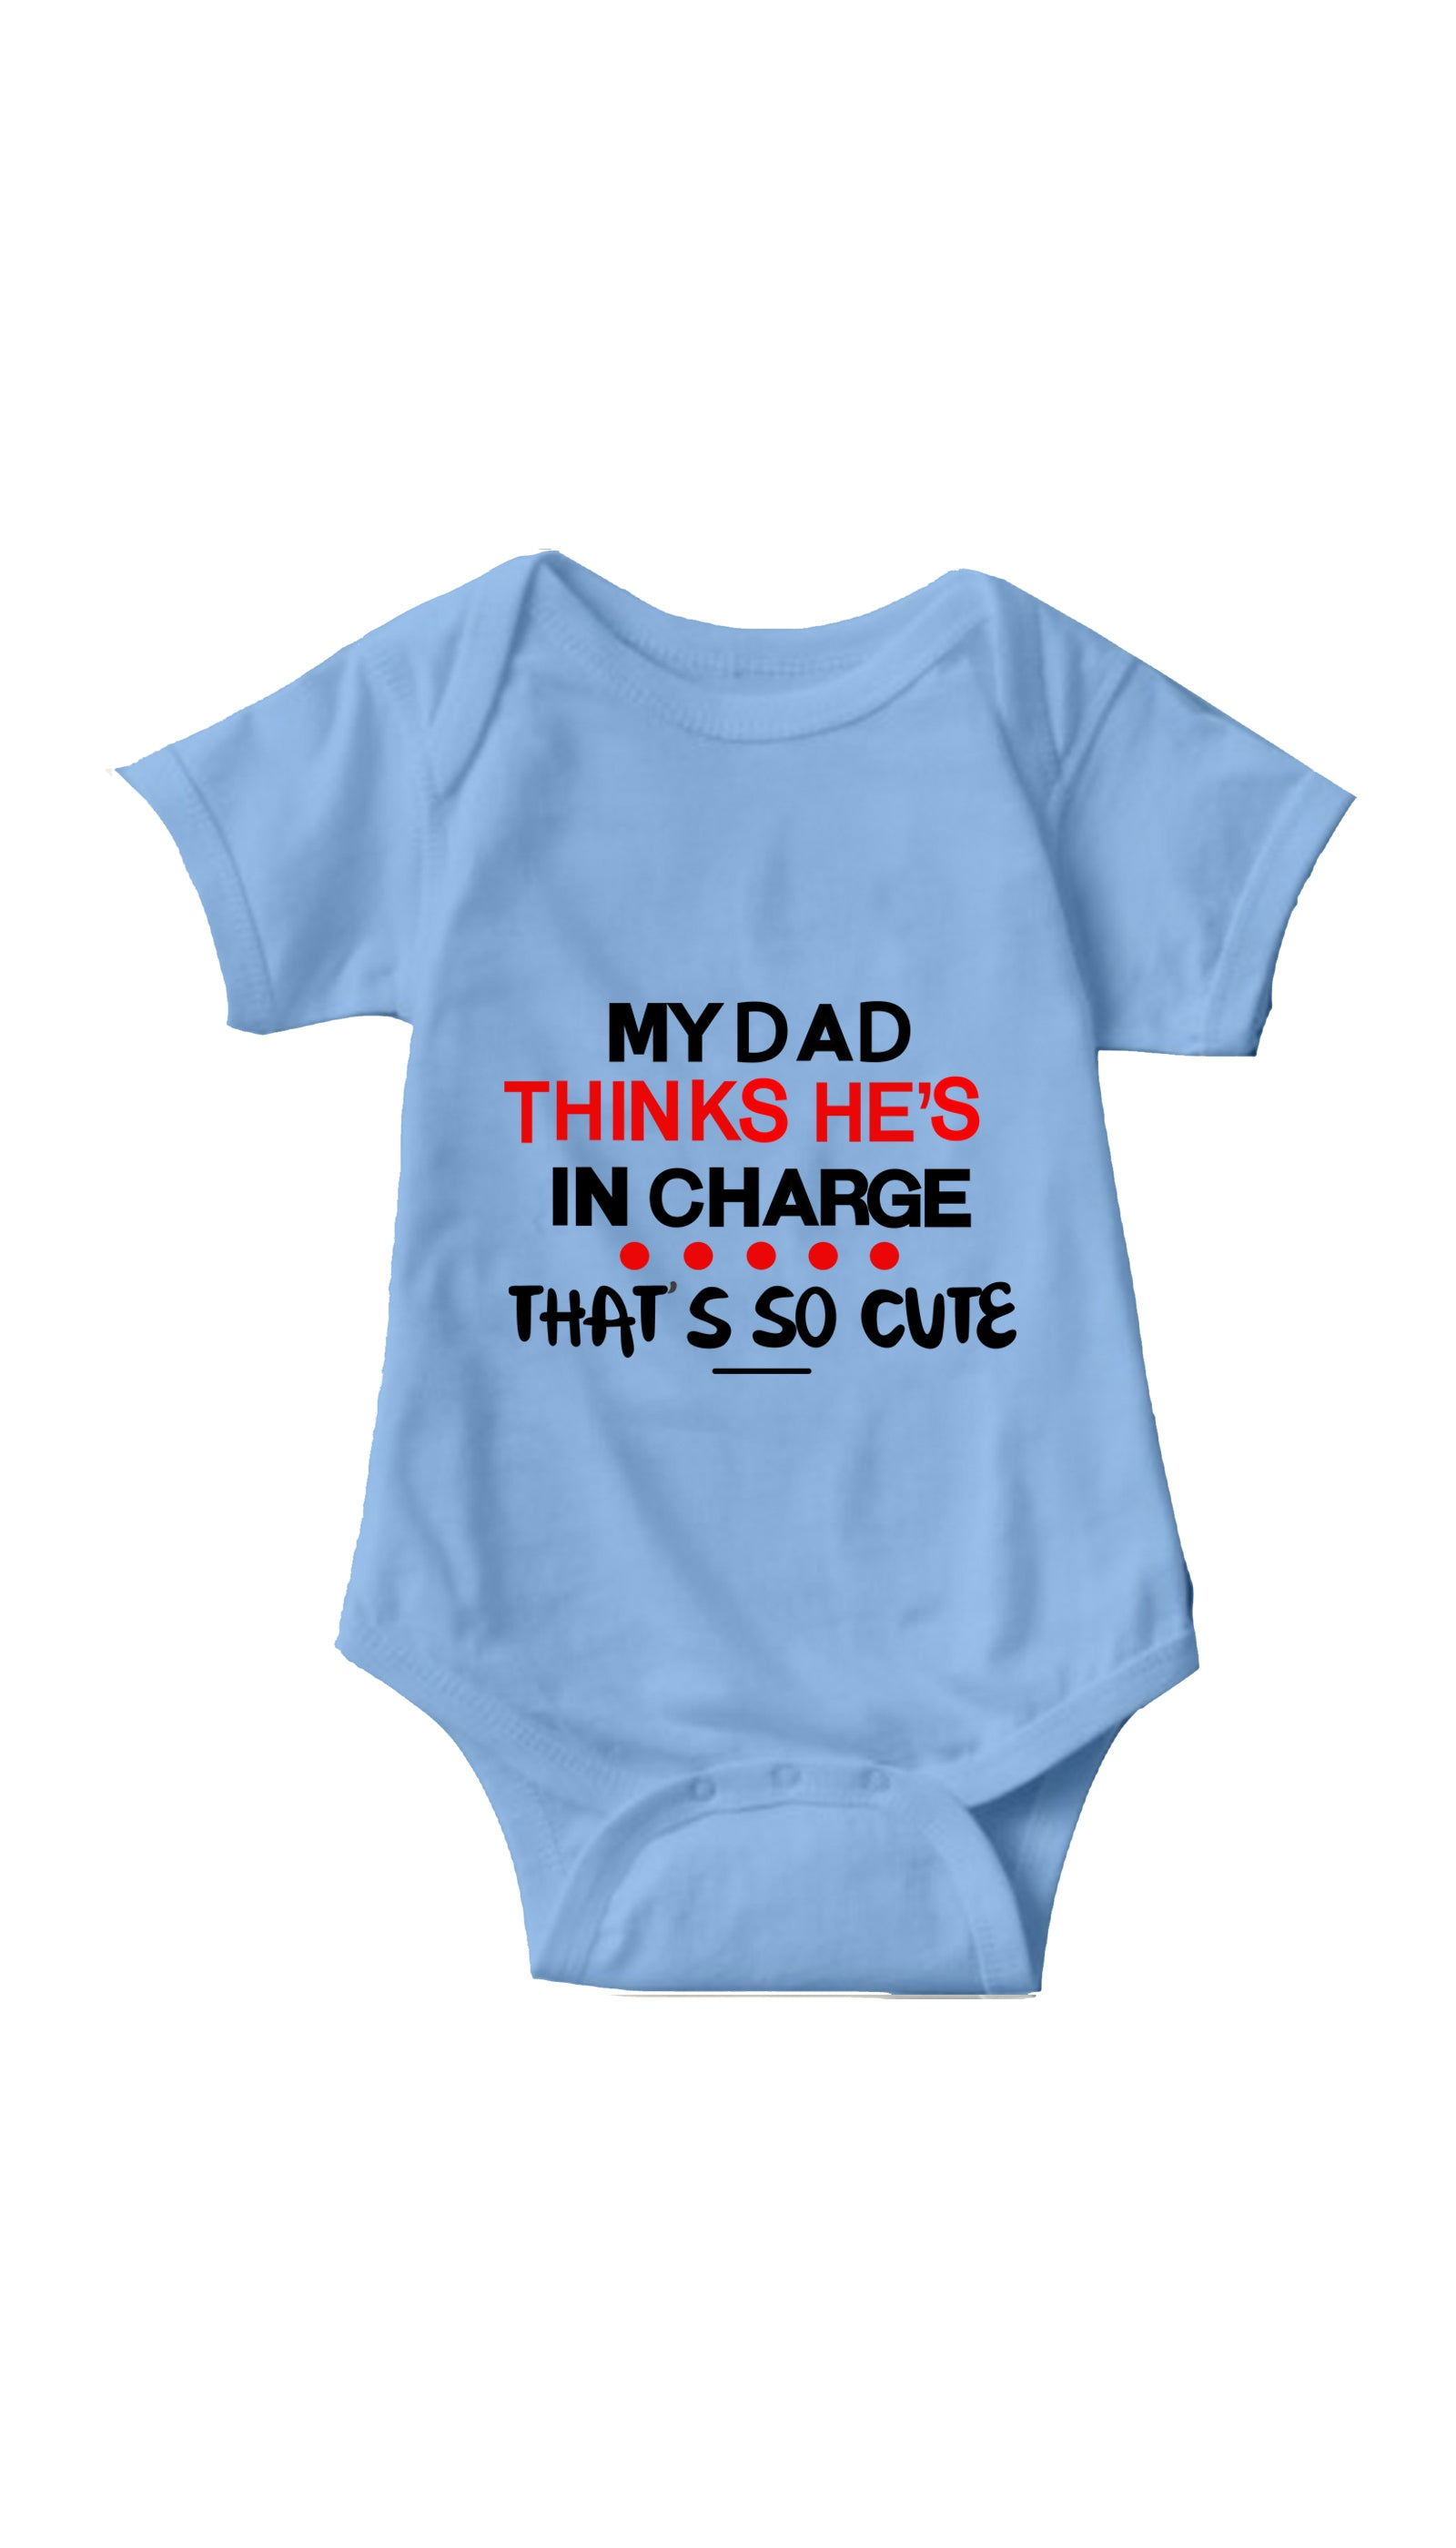 My Dad Thinks He's In Charge Light Blue Infant Onesie | Sarcastic ME